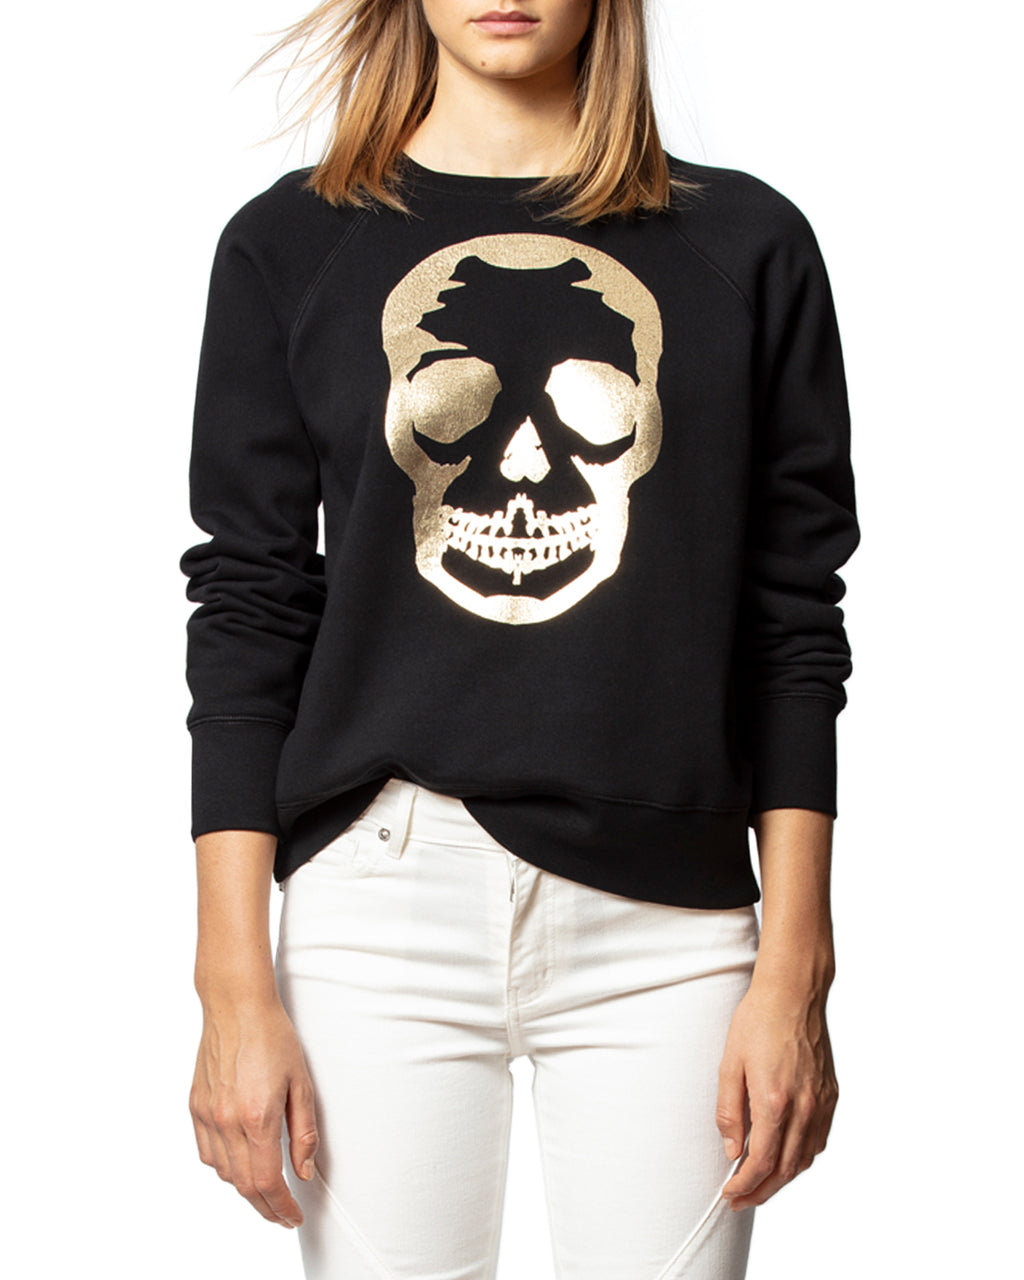 Upper Skull Gold Sweatshirt Noir